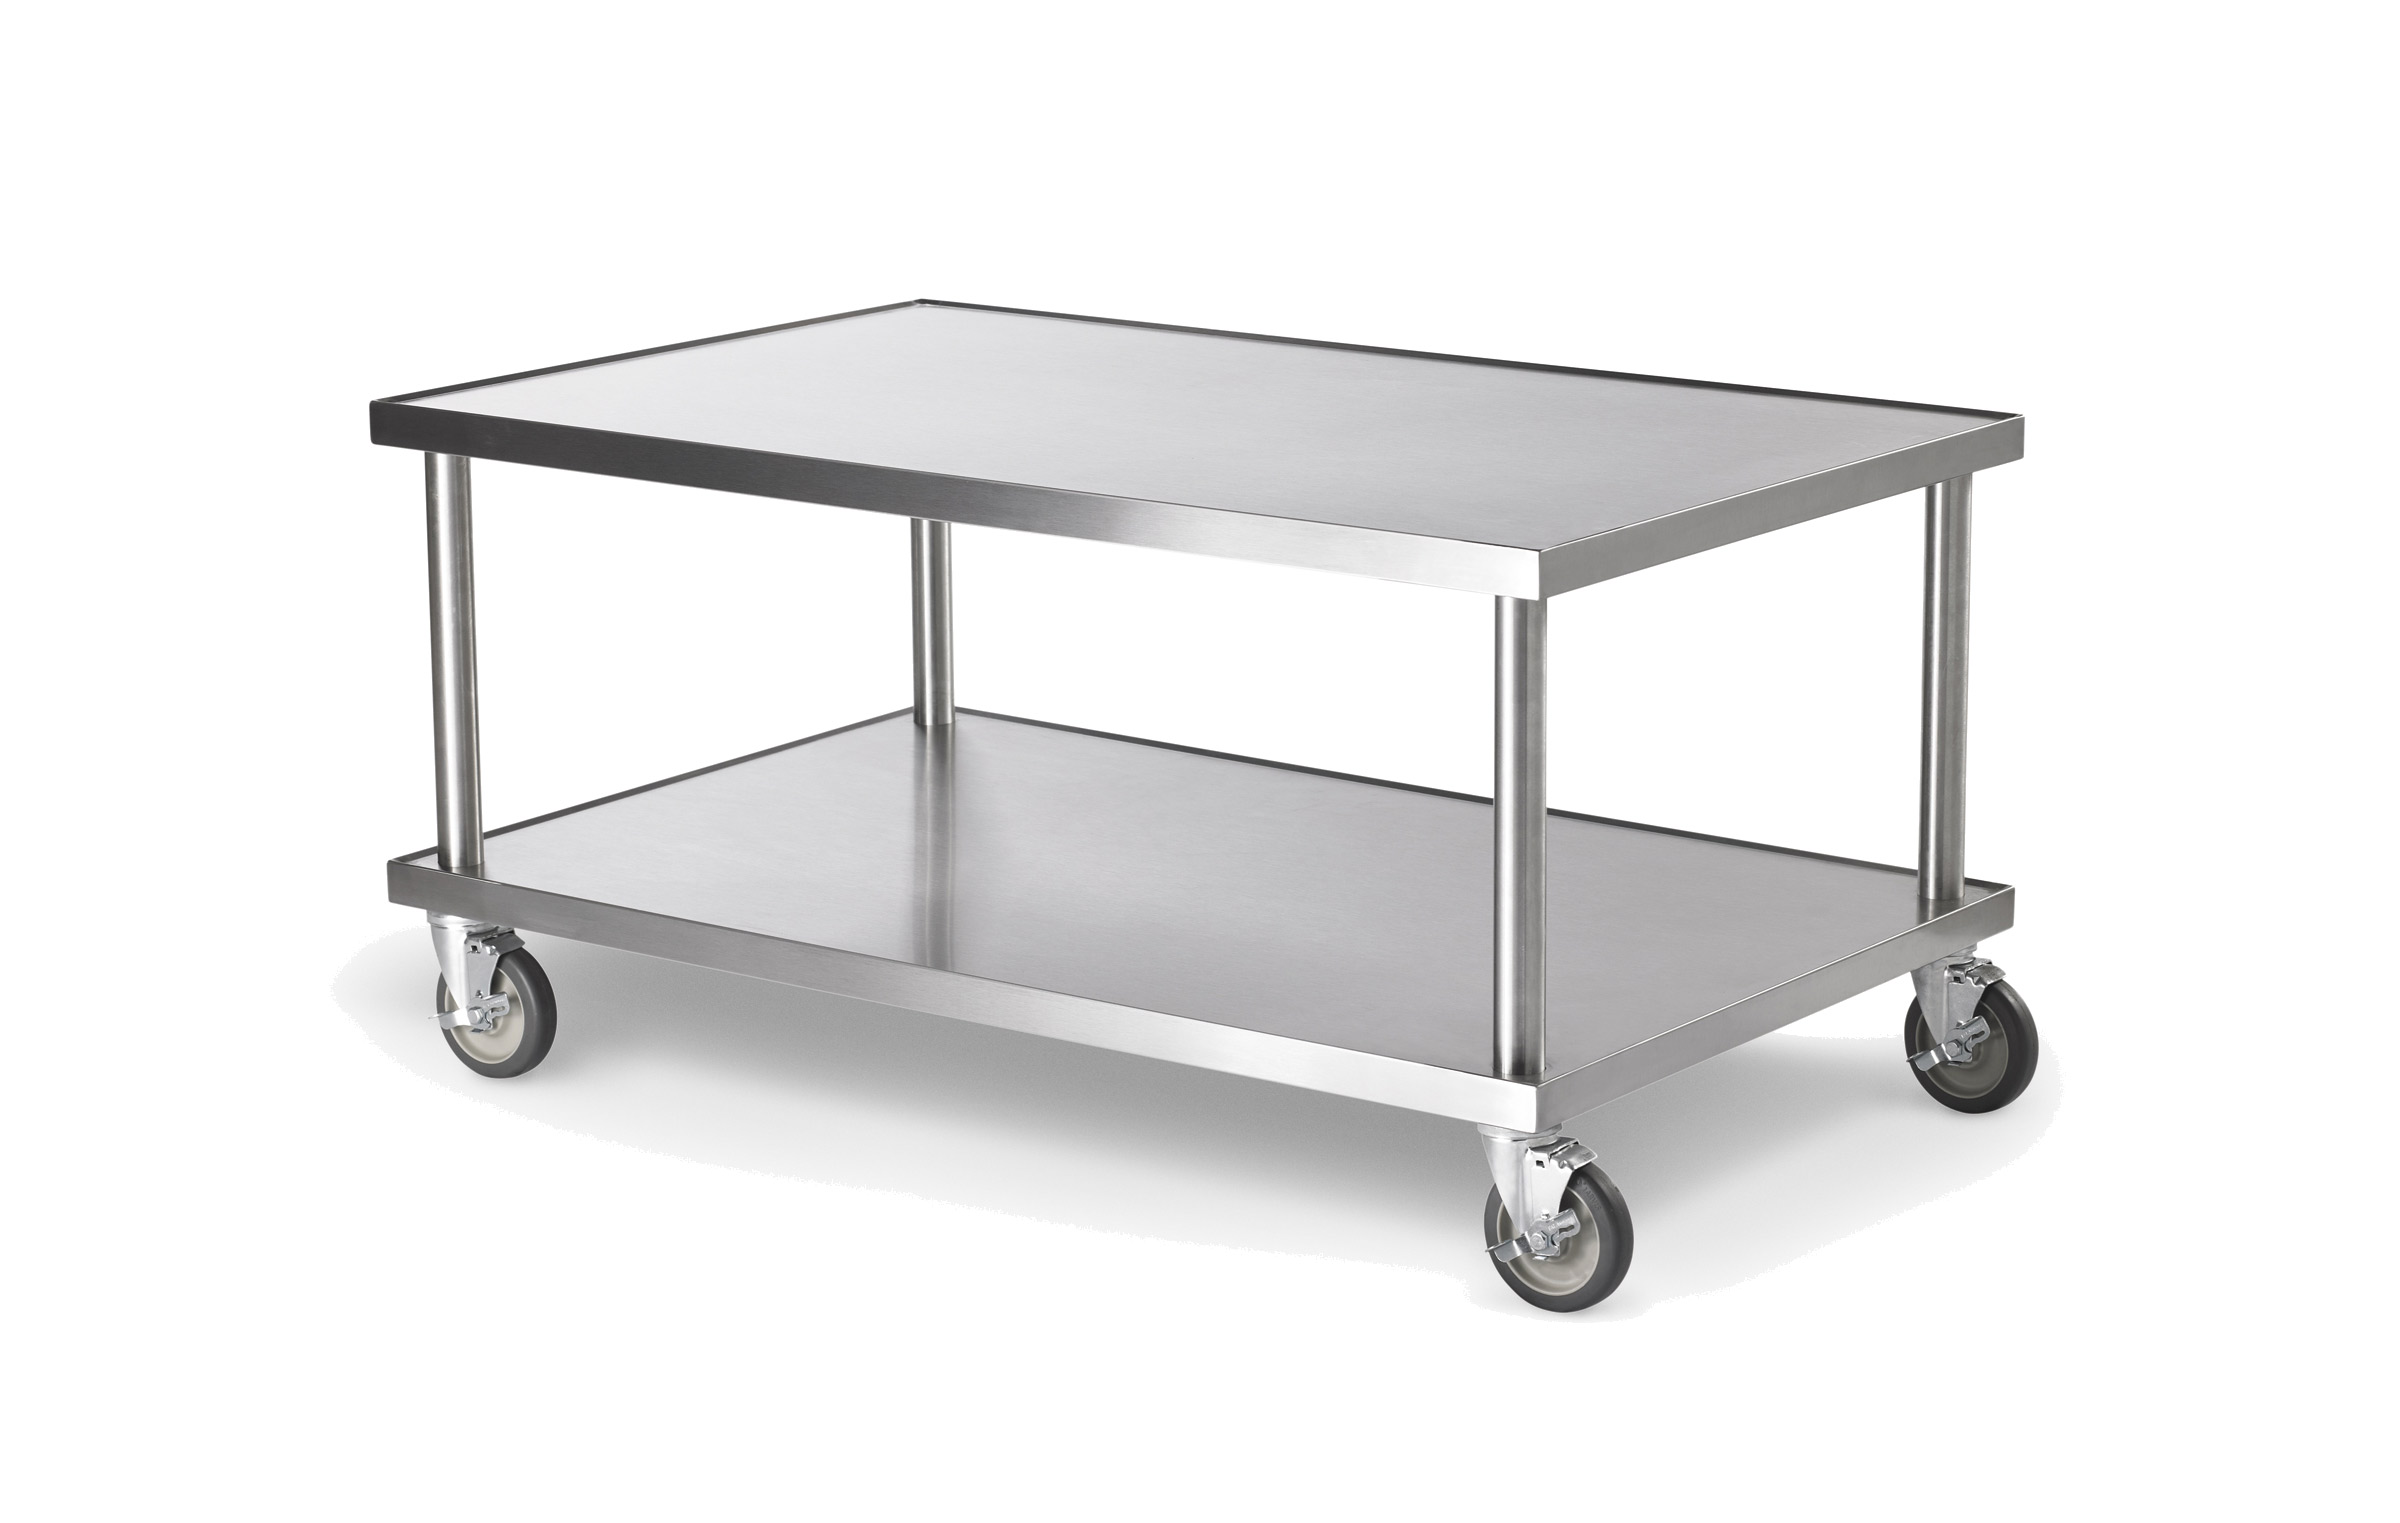 Vollrath 4087936 equipment stand, for countertop cooking